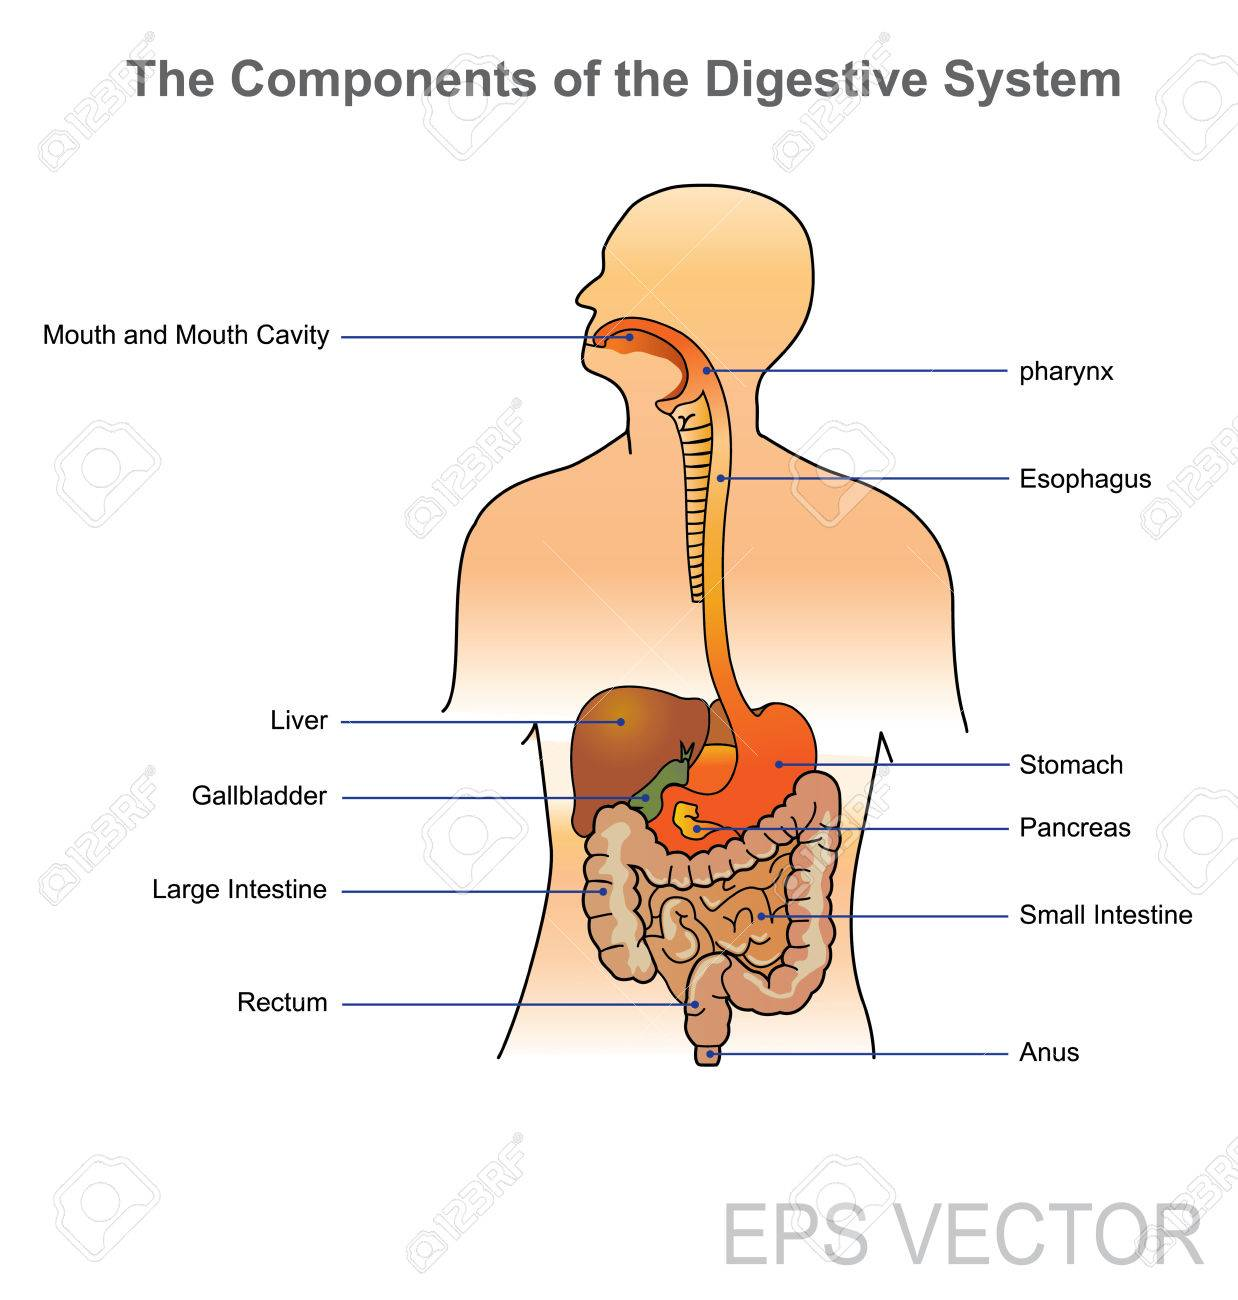 The Human Digestive System Consists Of The Gastrointestinal Tract ...